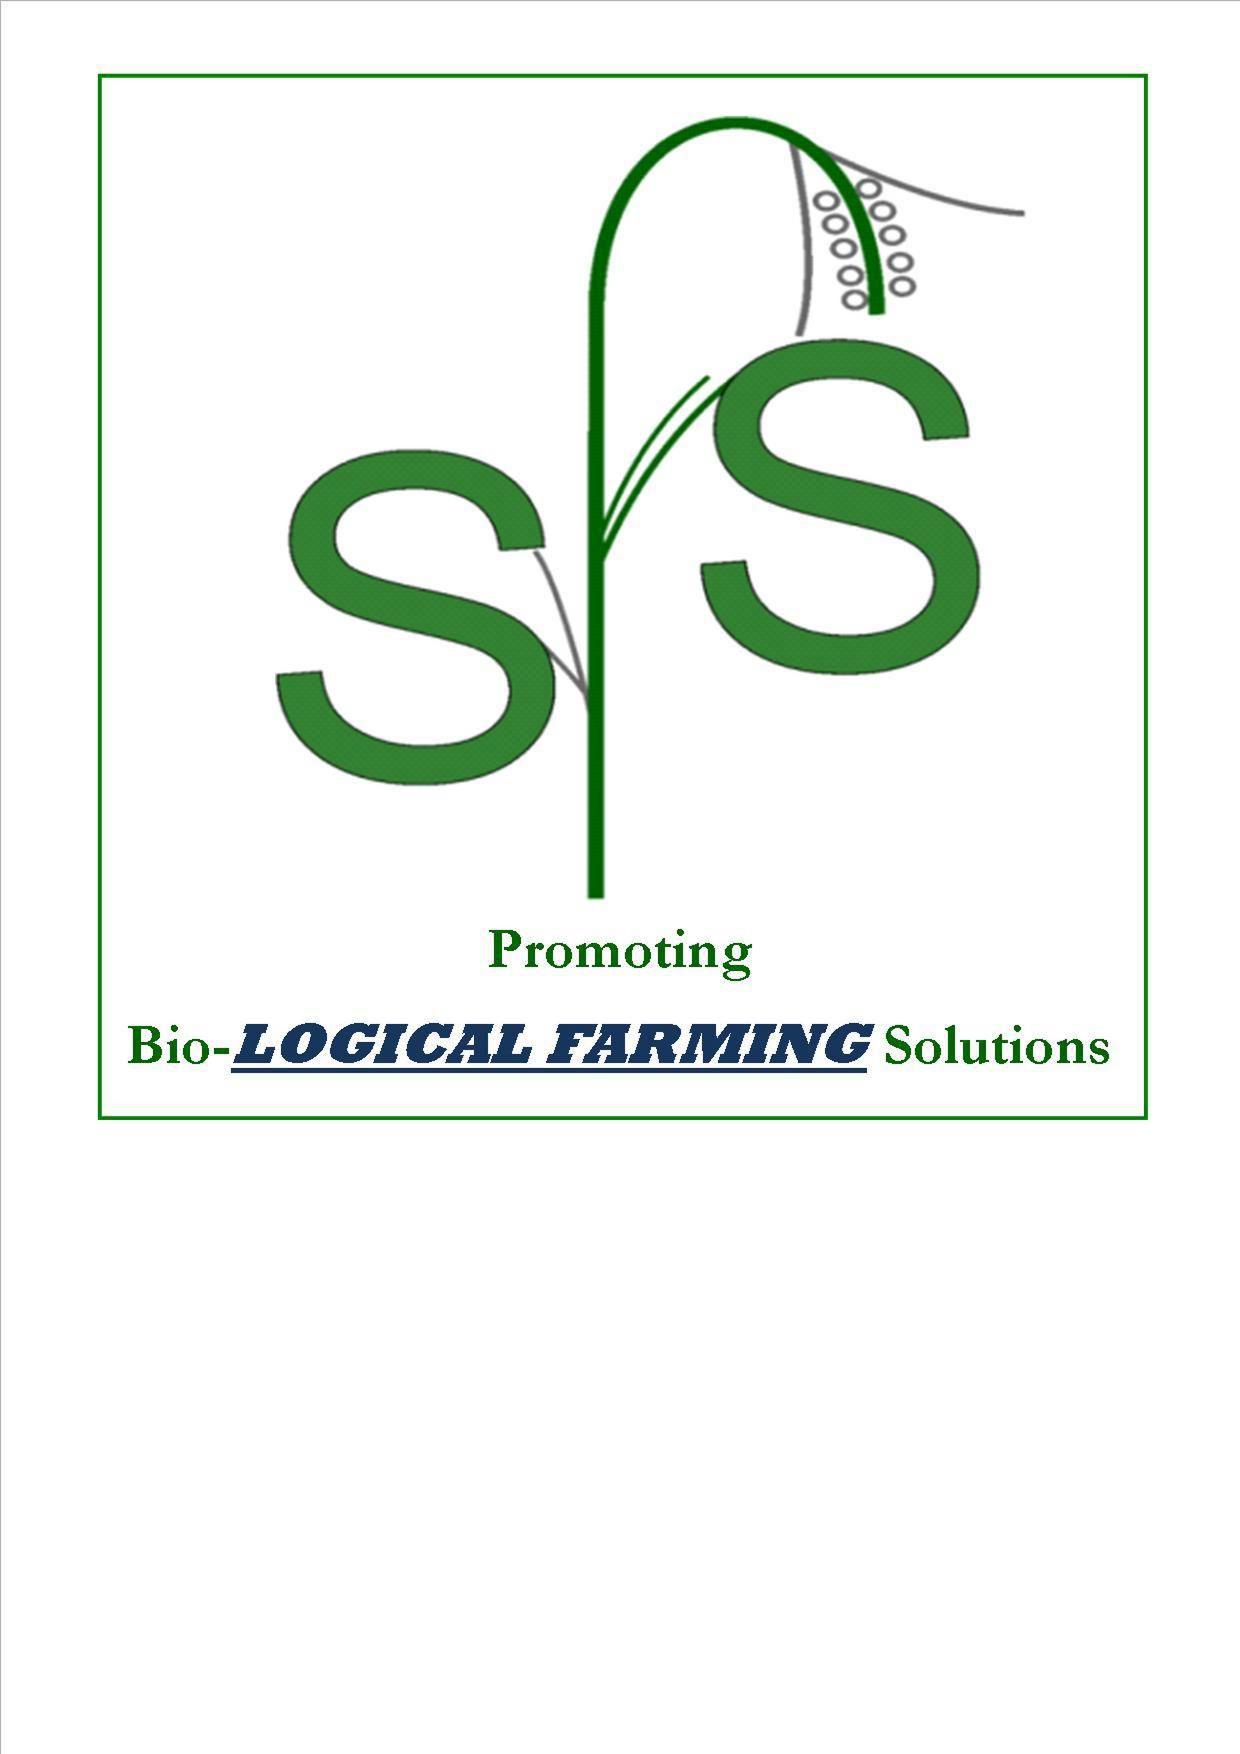 SOIL FERTILITY SERVICES